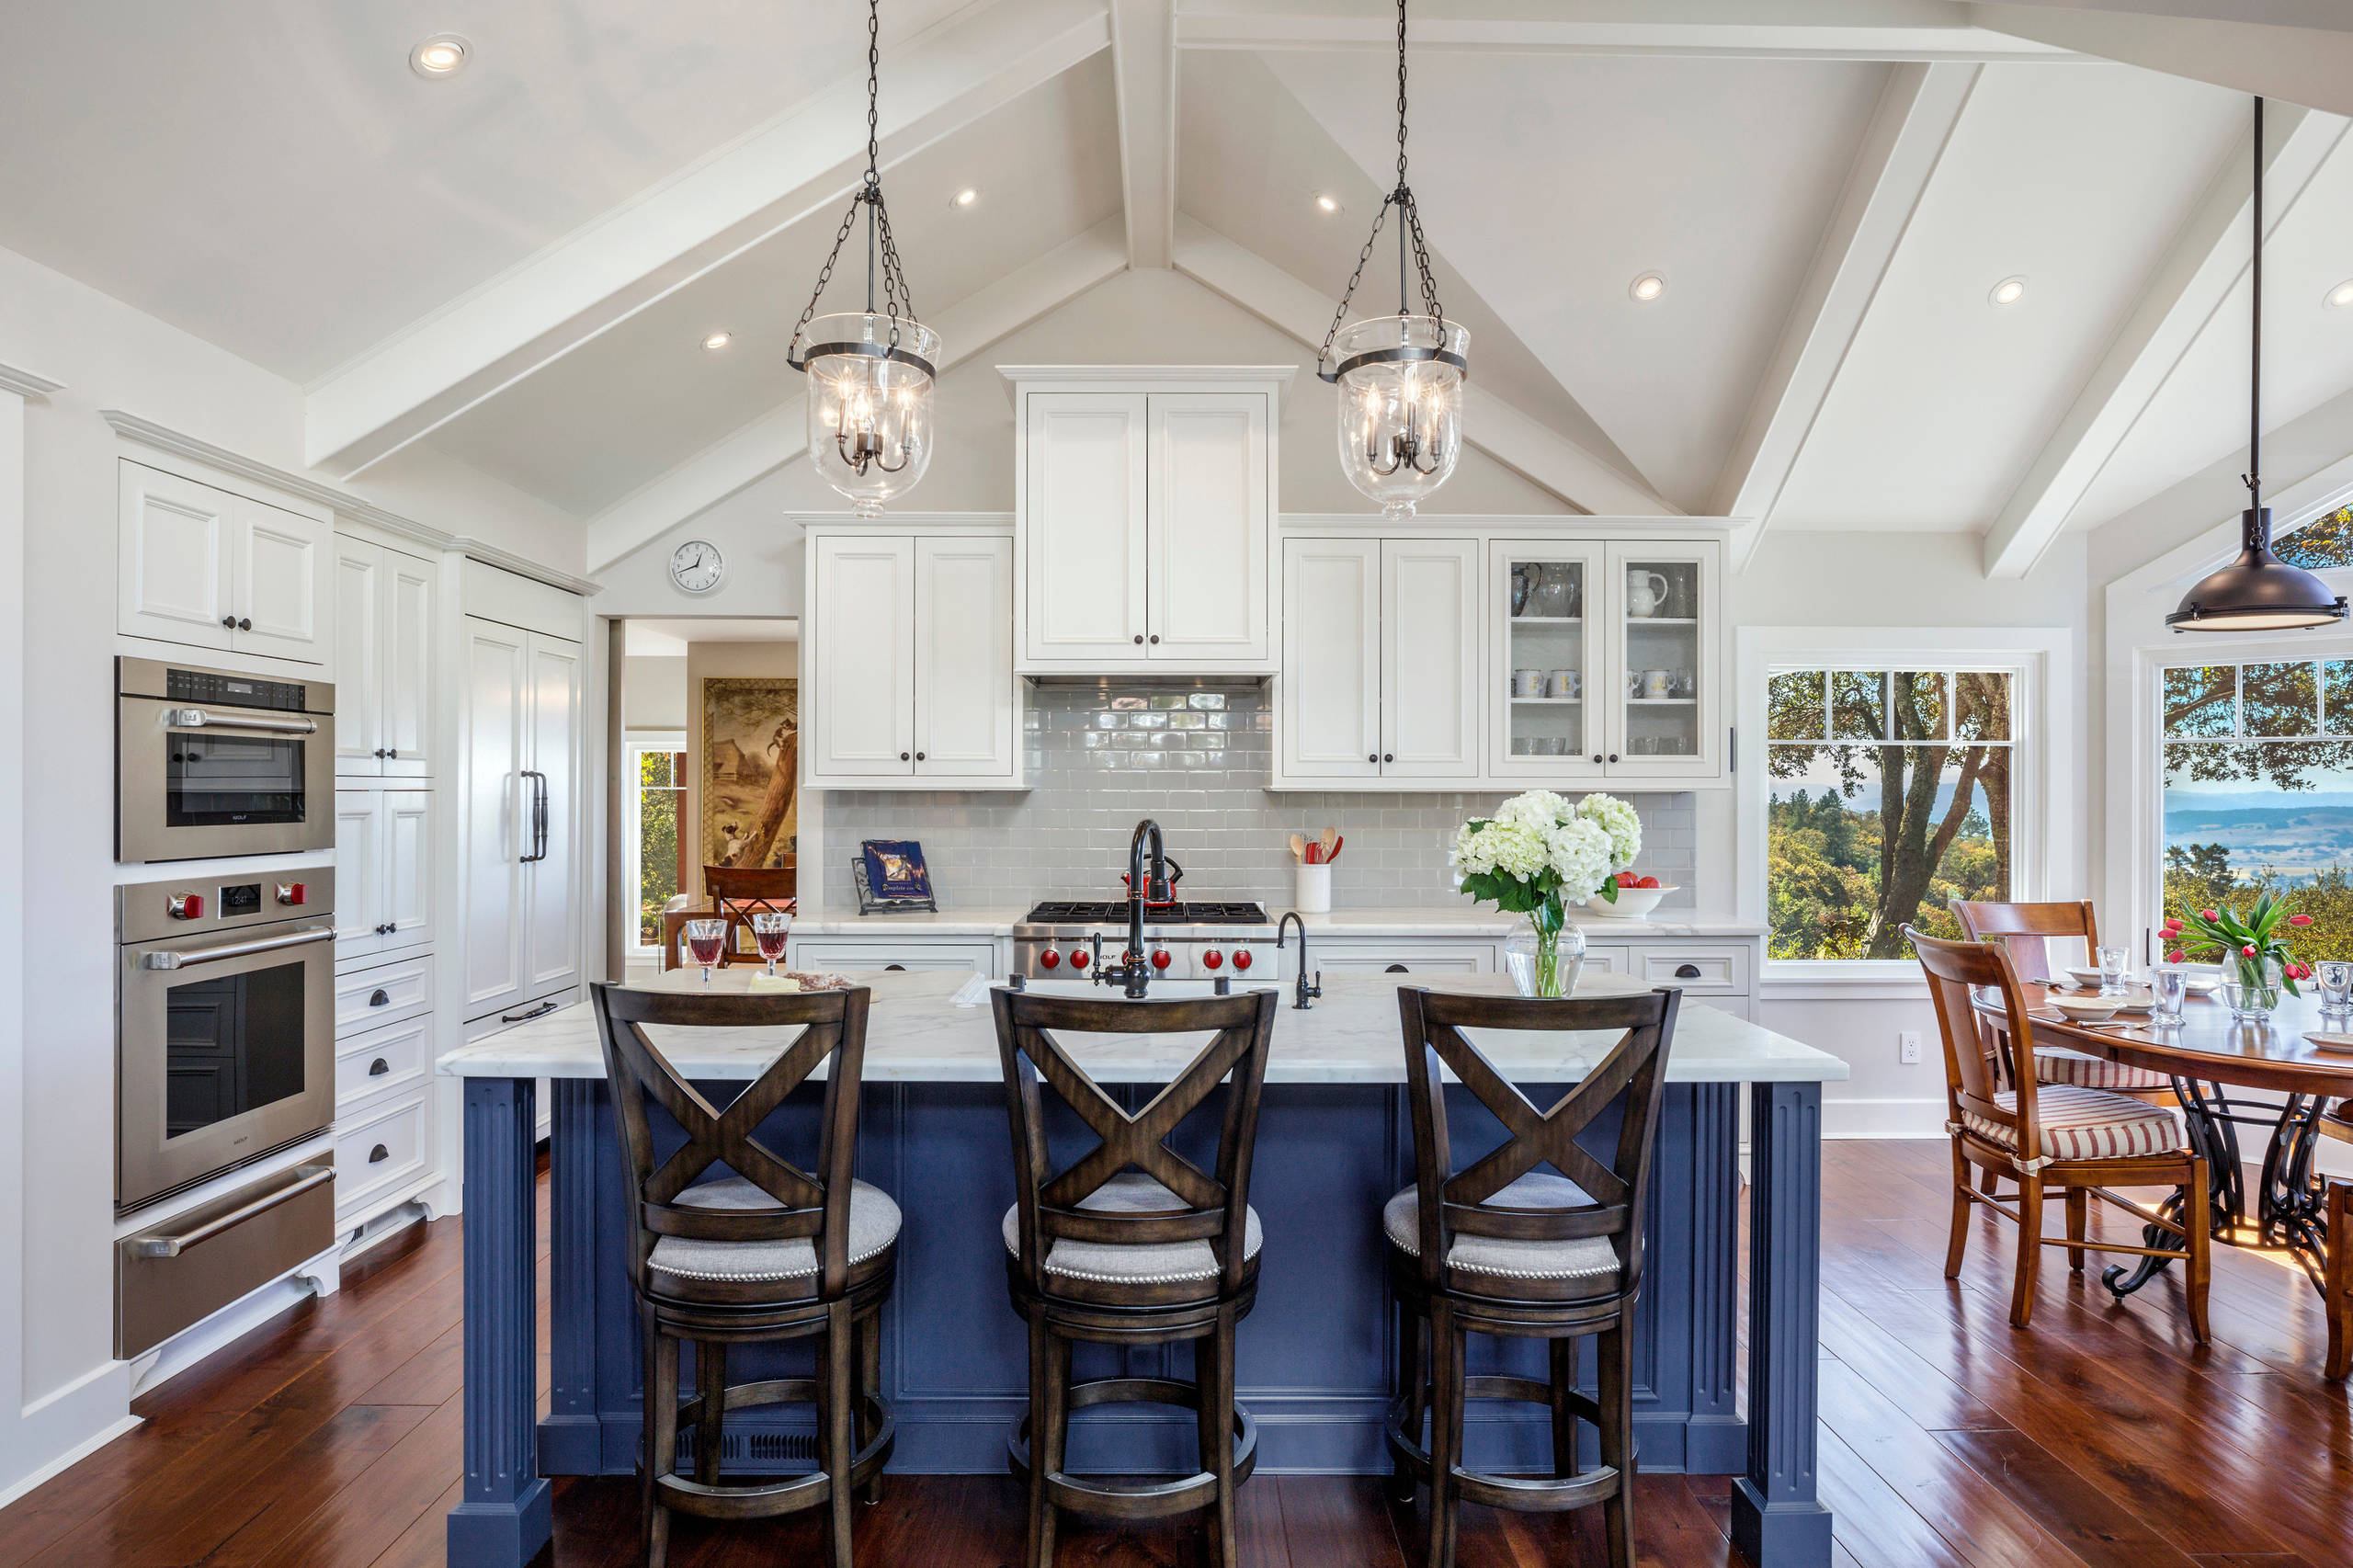 Modern Farmhouse with a Traditional Twist